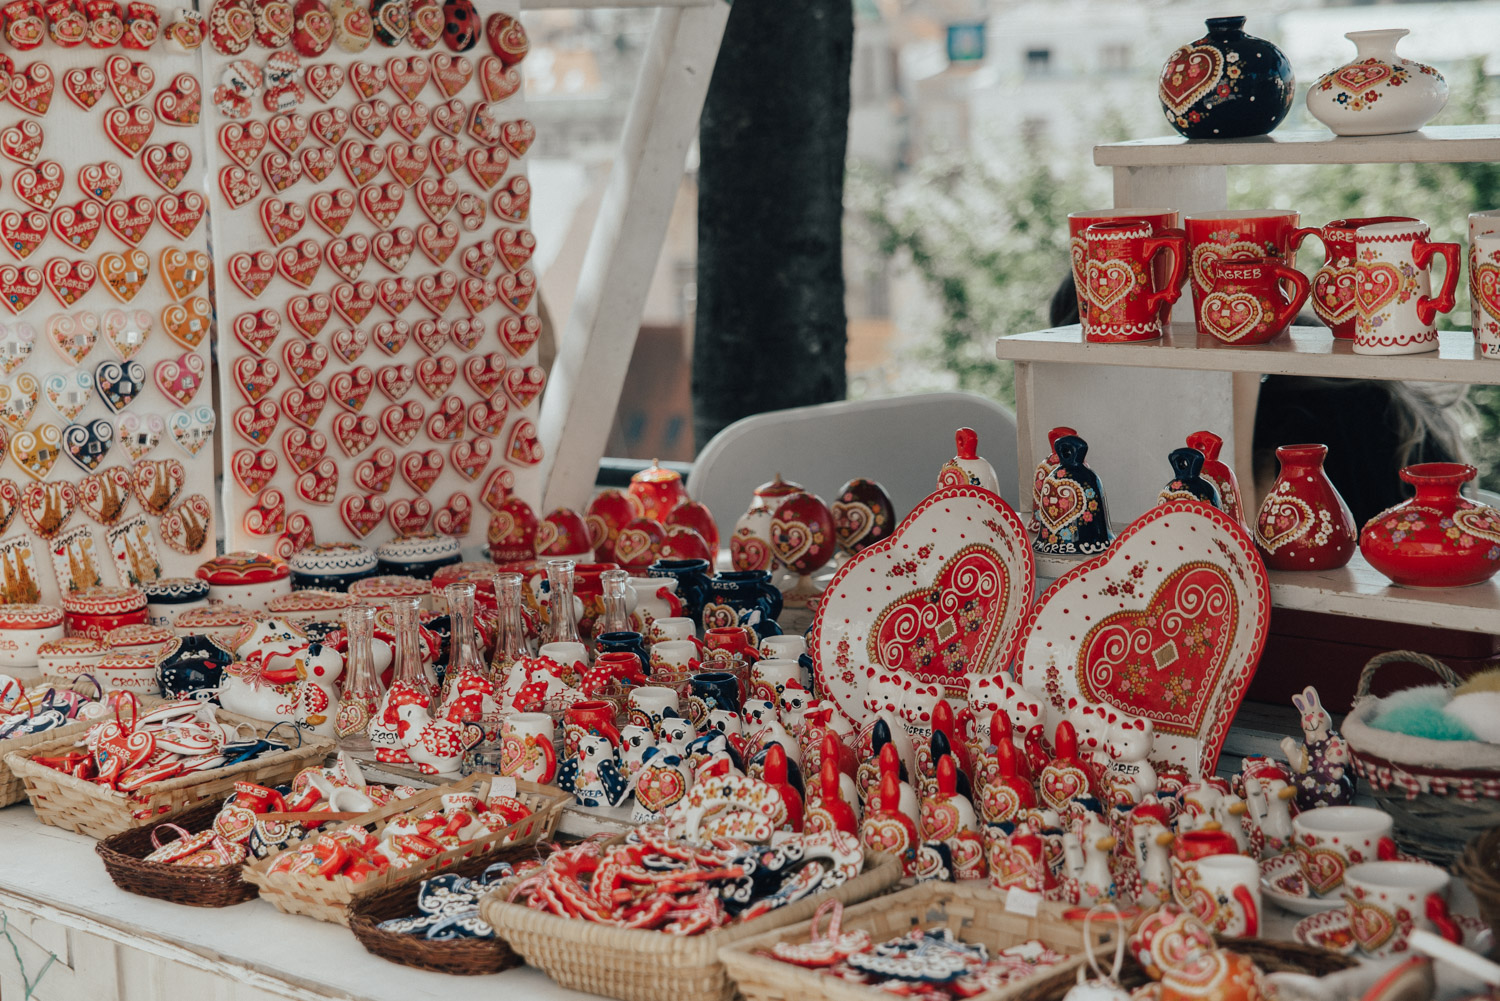 The Gingerbread Heart - a traditional souvenir in Zagreb, Croatia